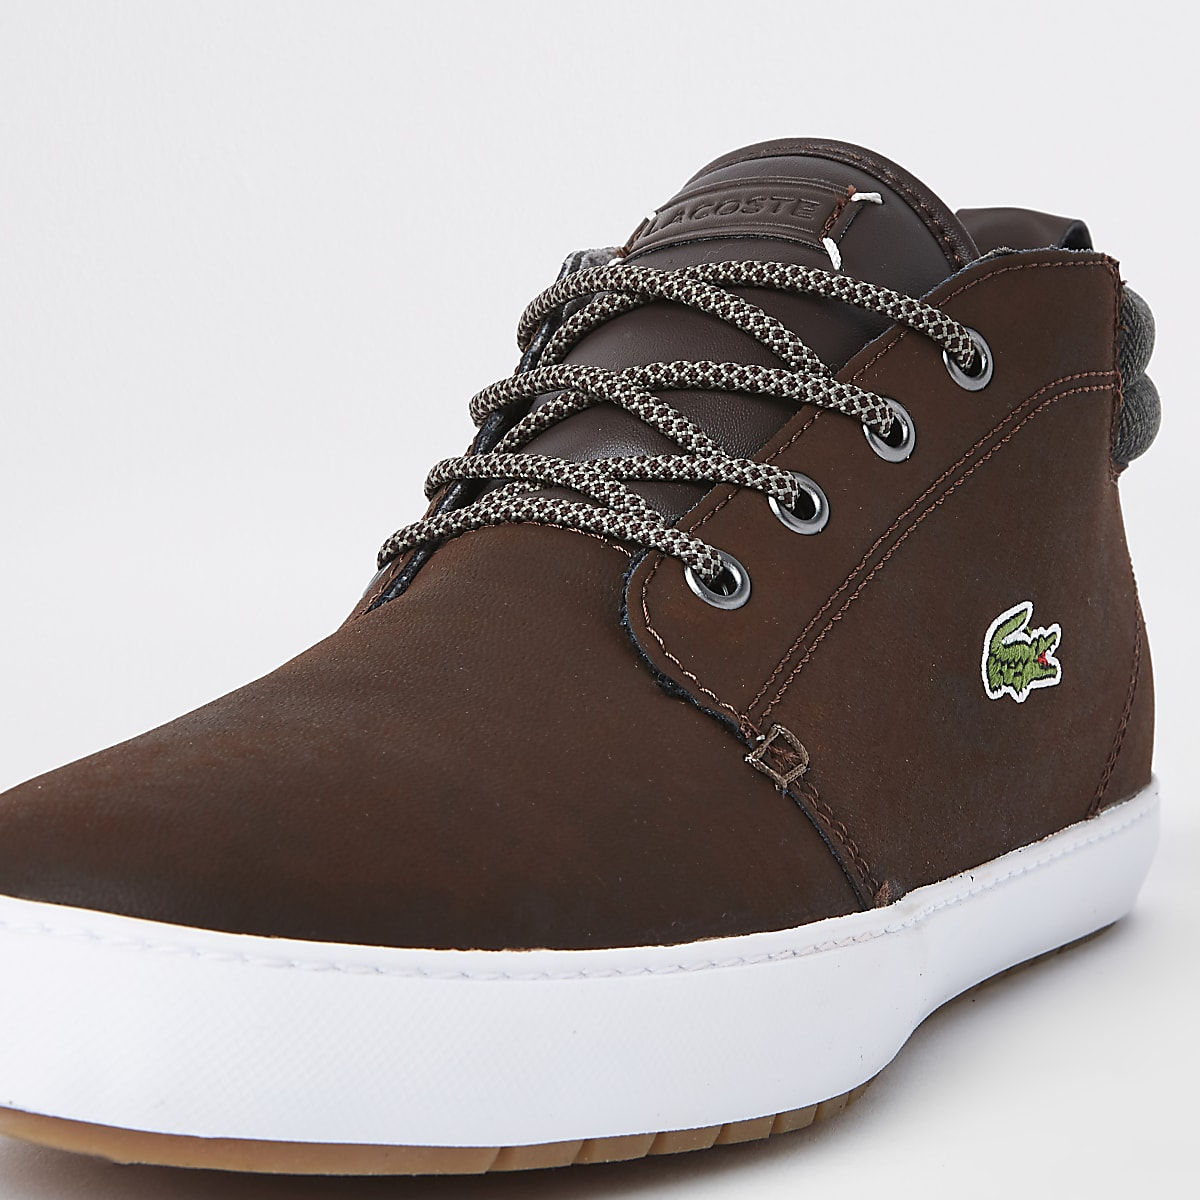 acfe2e33b Lacoste brown leather mid top trainers - Trainers - Shoes   Boots - men